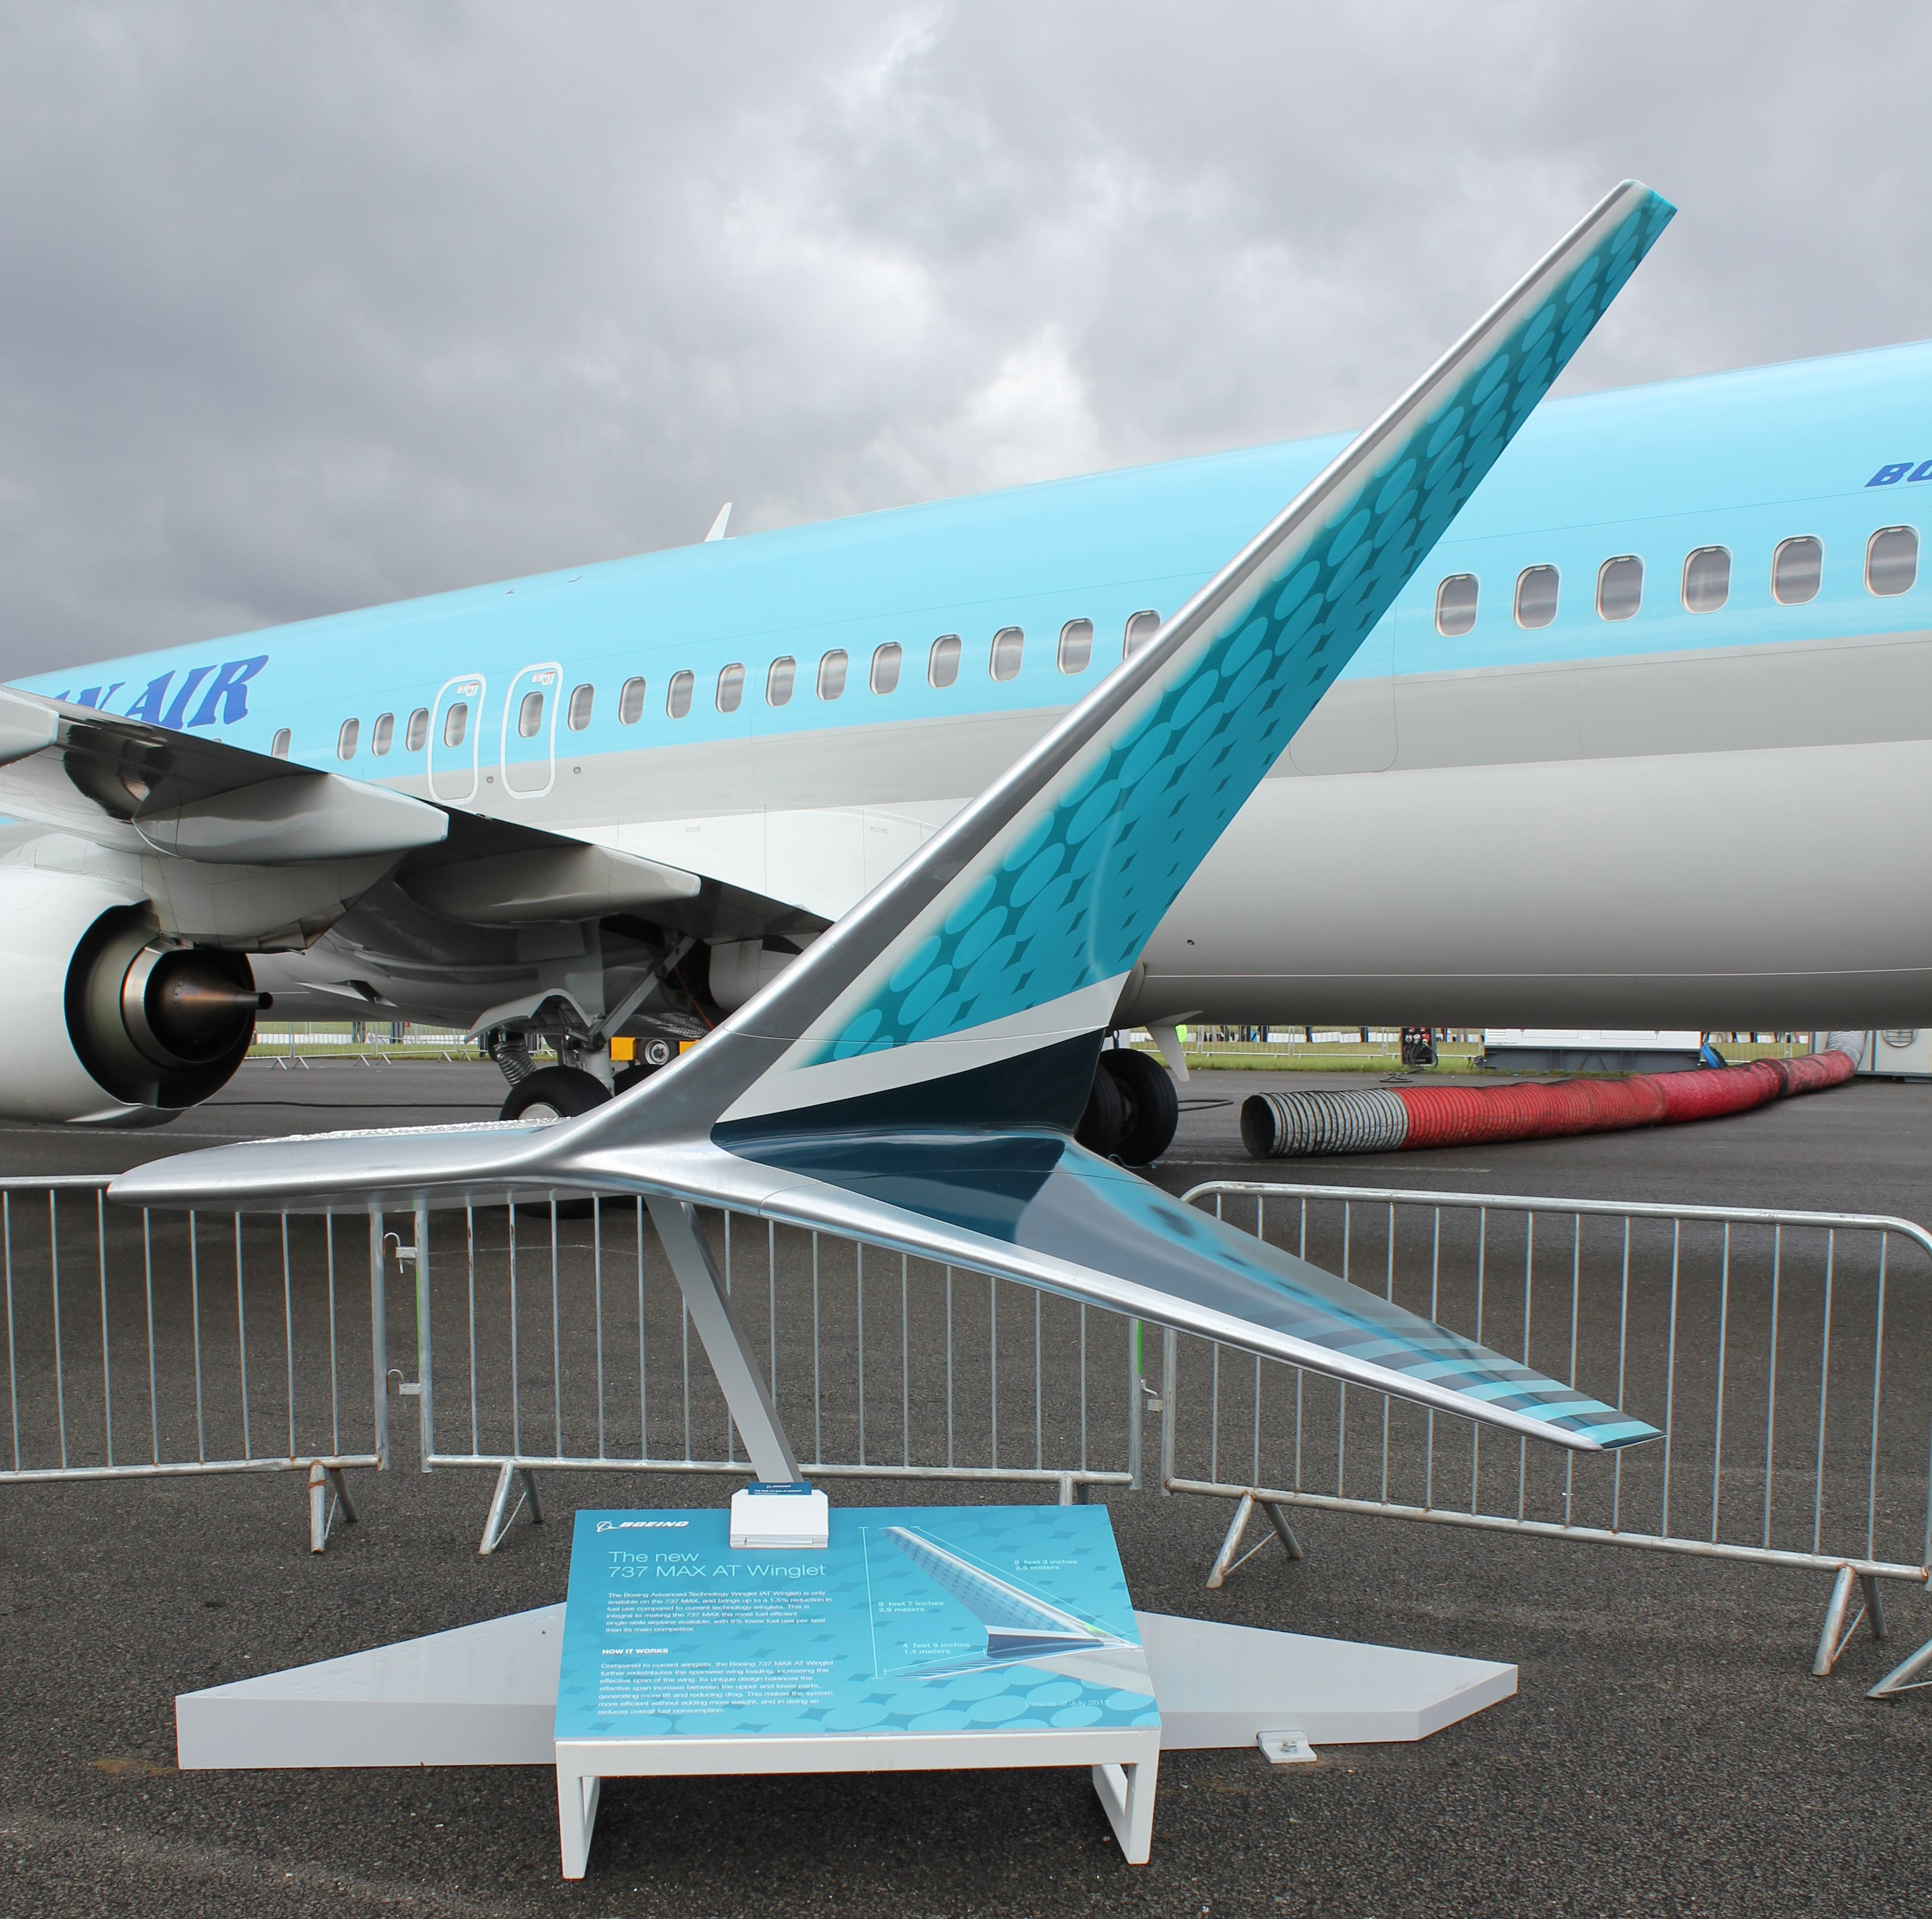 Farnborough Photo Of Note Boeing 737 Max Winglet Boeing 737 Boeing Aviation